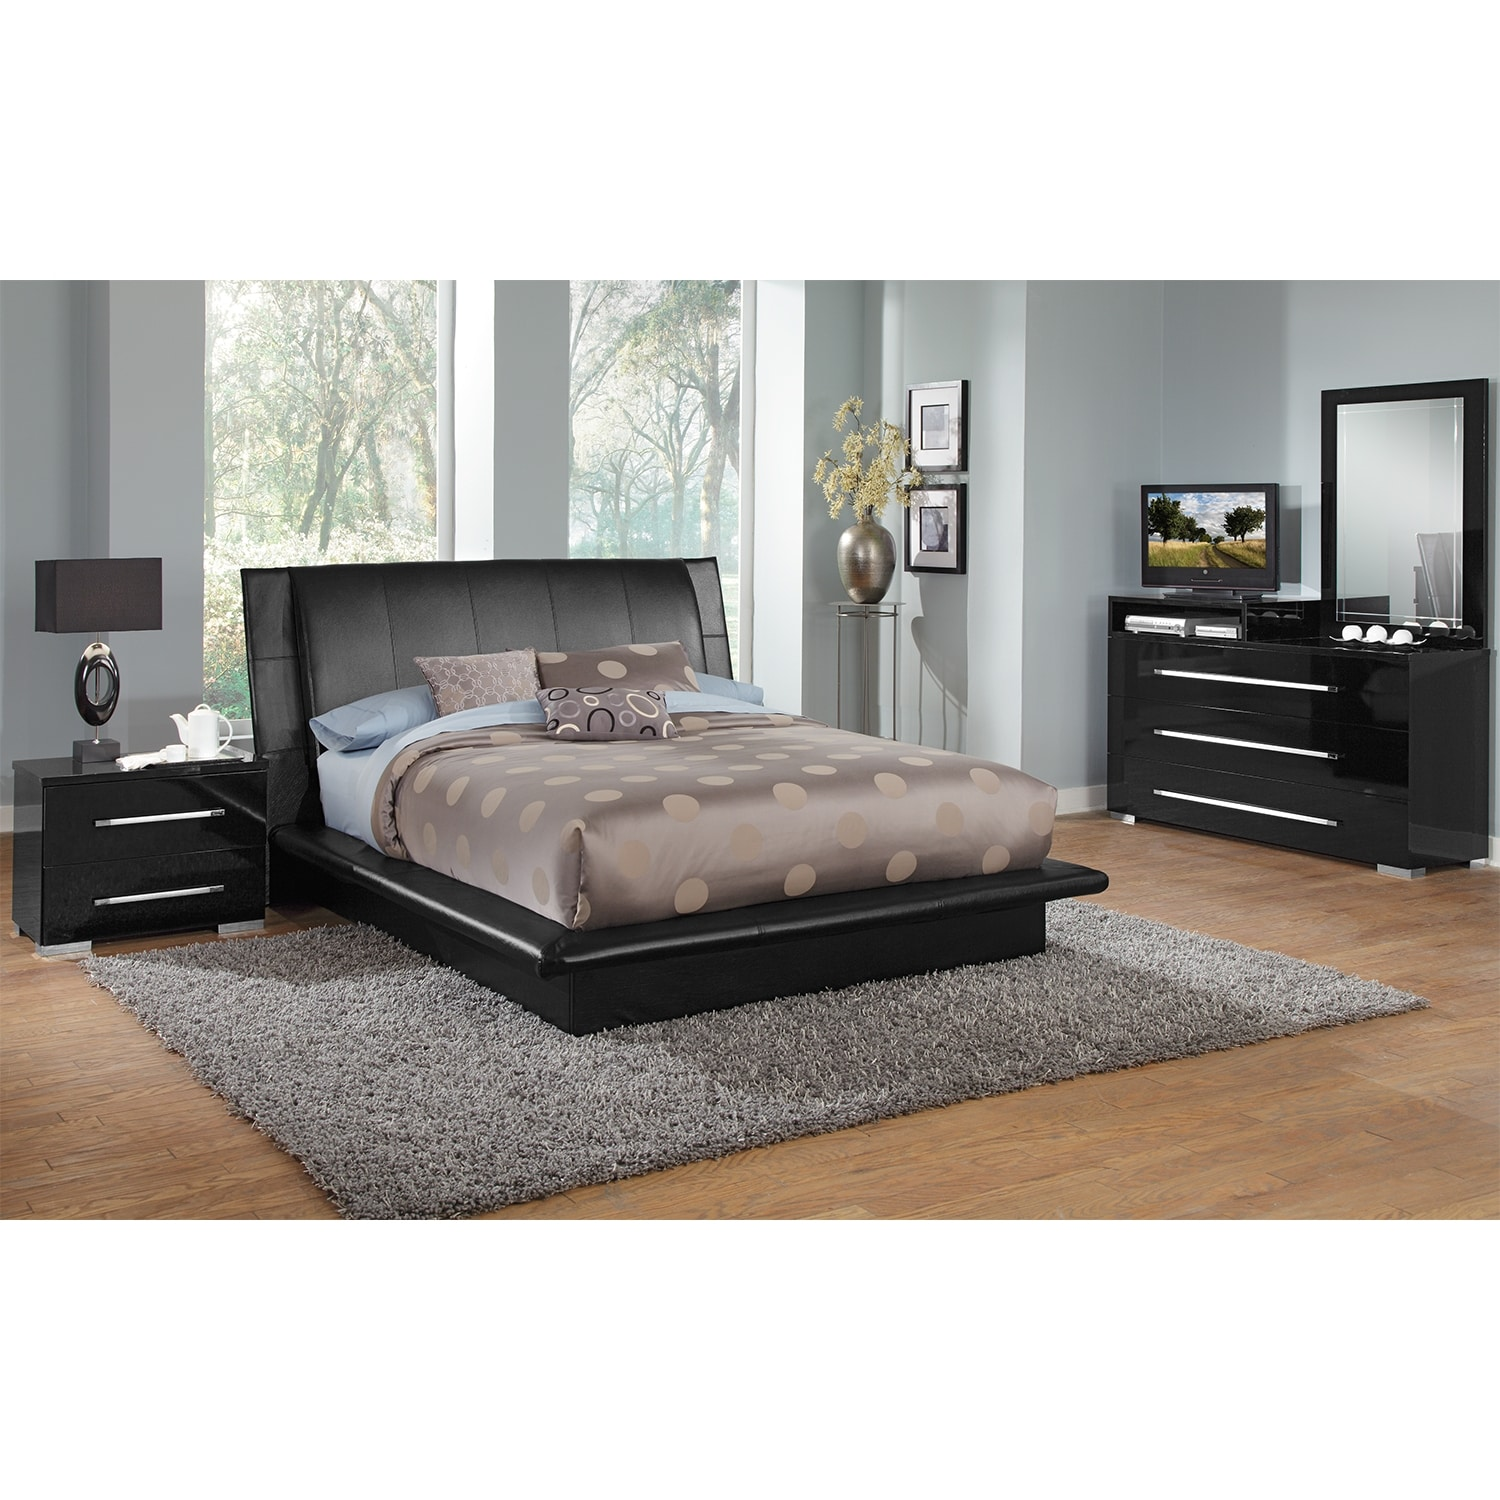 Bedroom Furniture - Dimora 6-Piece King Upholstered Bedroom Set with Media Dresser - Black